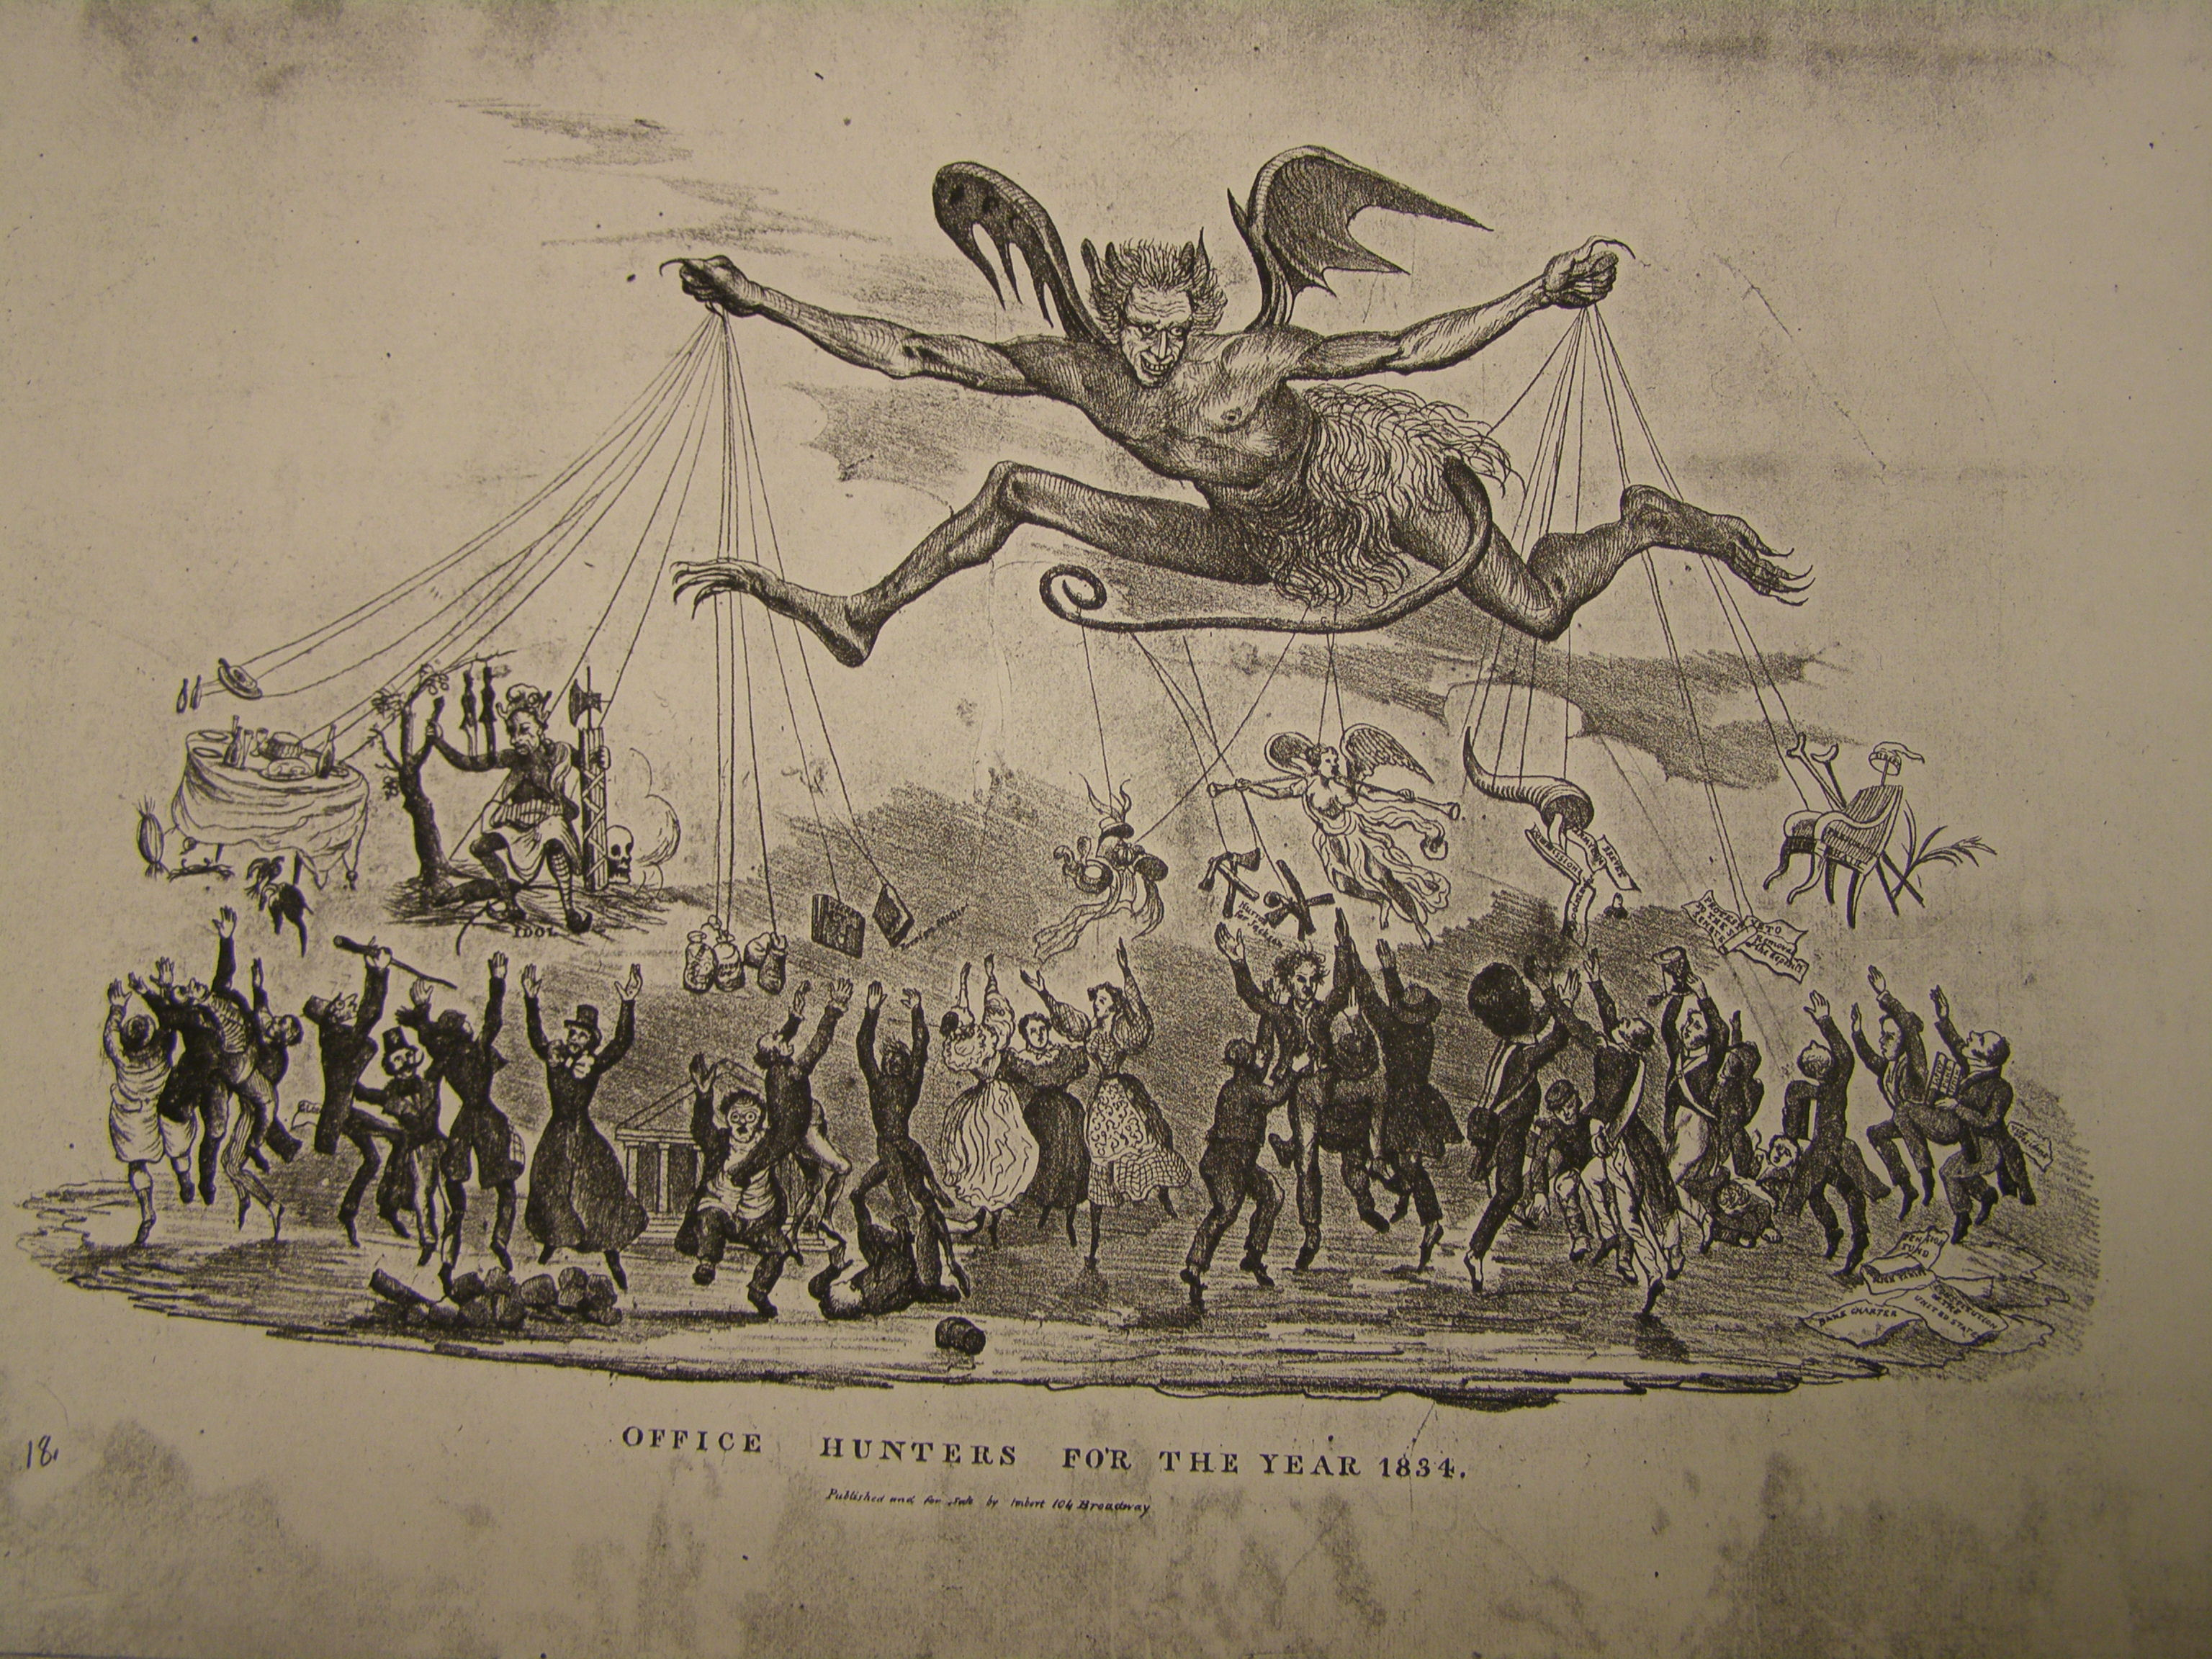 analyzing andrew jacksons policies and presidency I t was one of the foulest presidential campaigns in american history the race for the white house in 1828 pitted incumbent john quincy adams against andrew jackson, hero of the battle of new orleans this was the second time that jackson and adams had faced one another for the presidency.